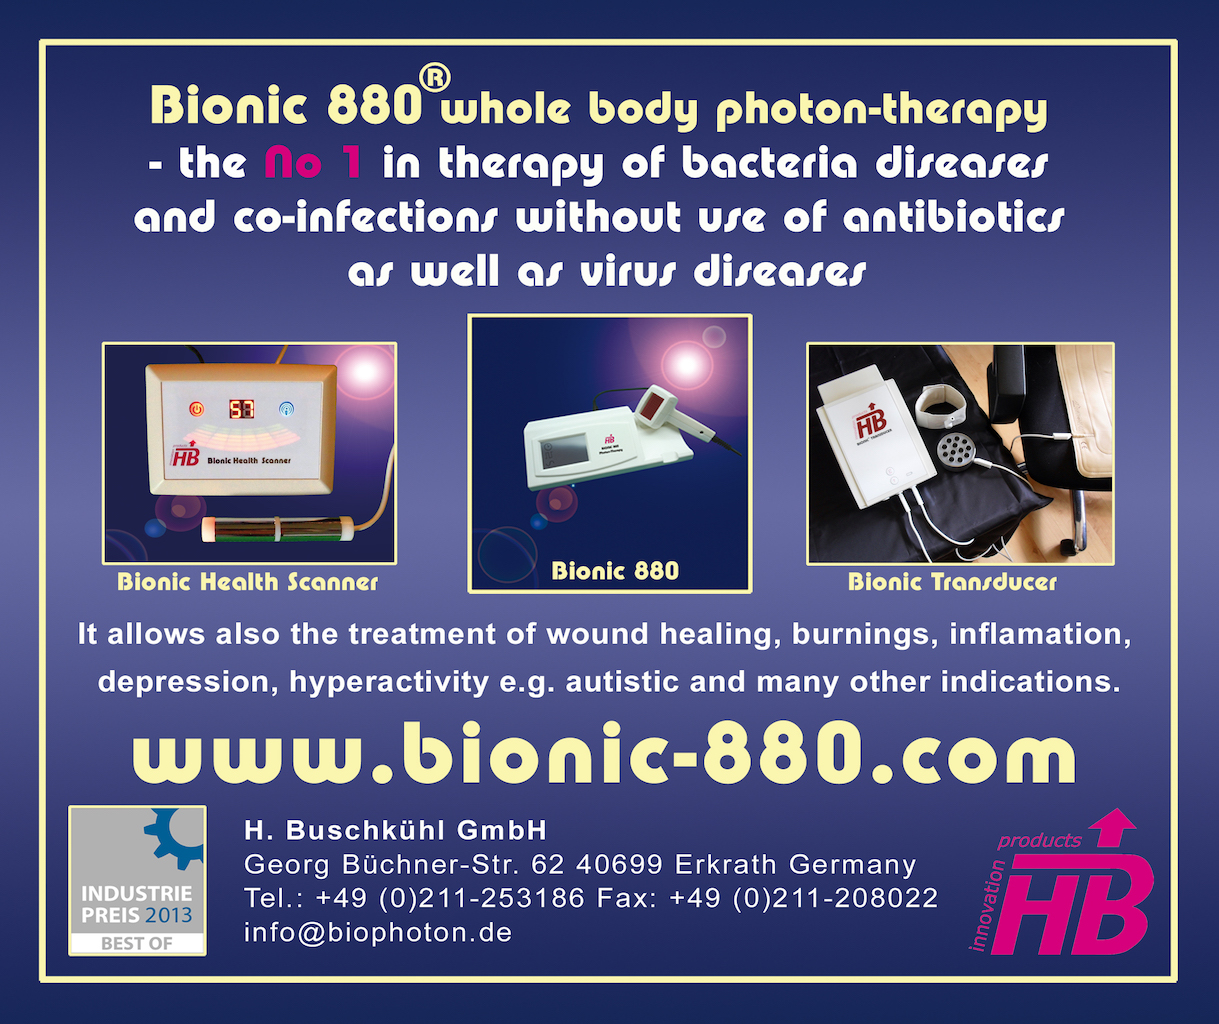 Bionic 880 -Photon-Therapy range